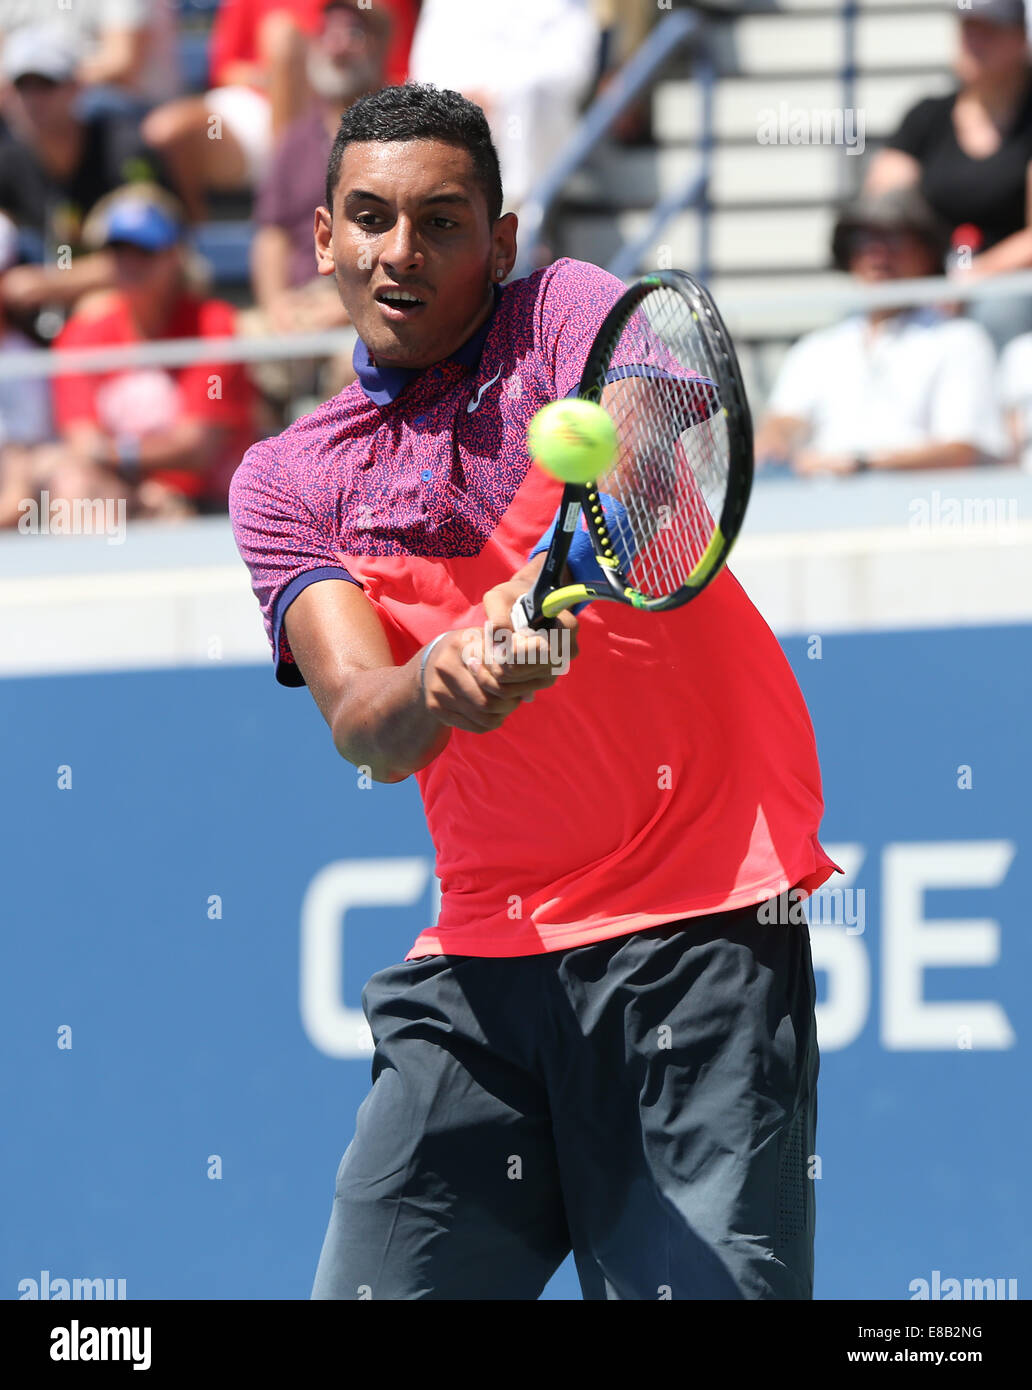 Nick Kyrgios (AUS) in action at the US Open 2014 Championships in New York,USA. - Stock Image